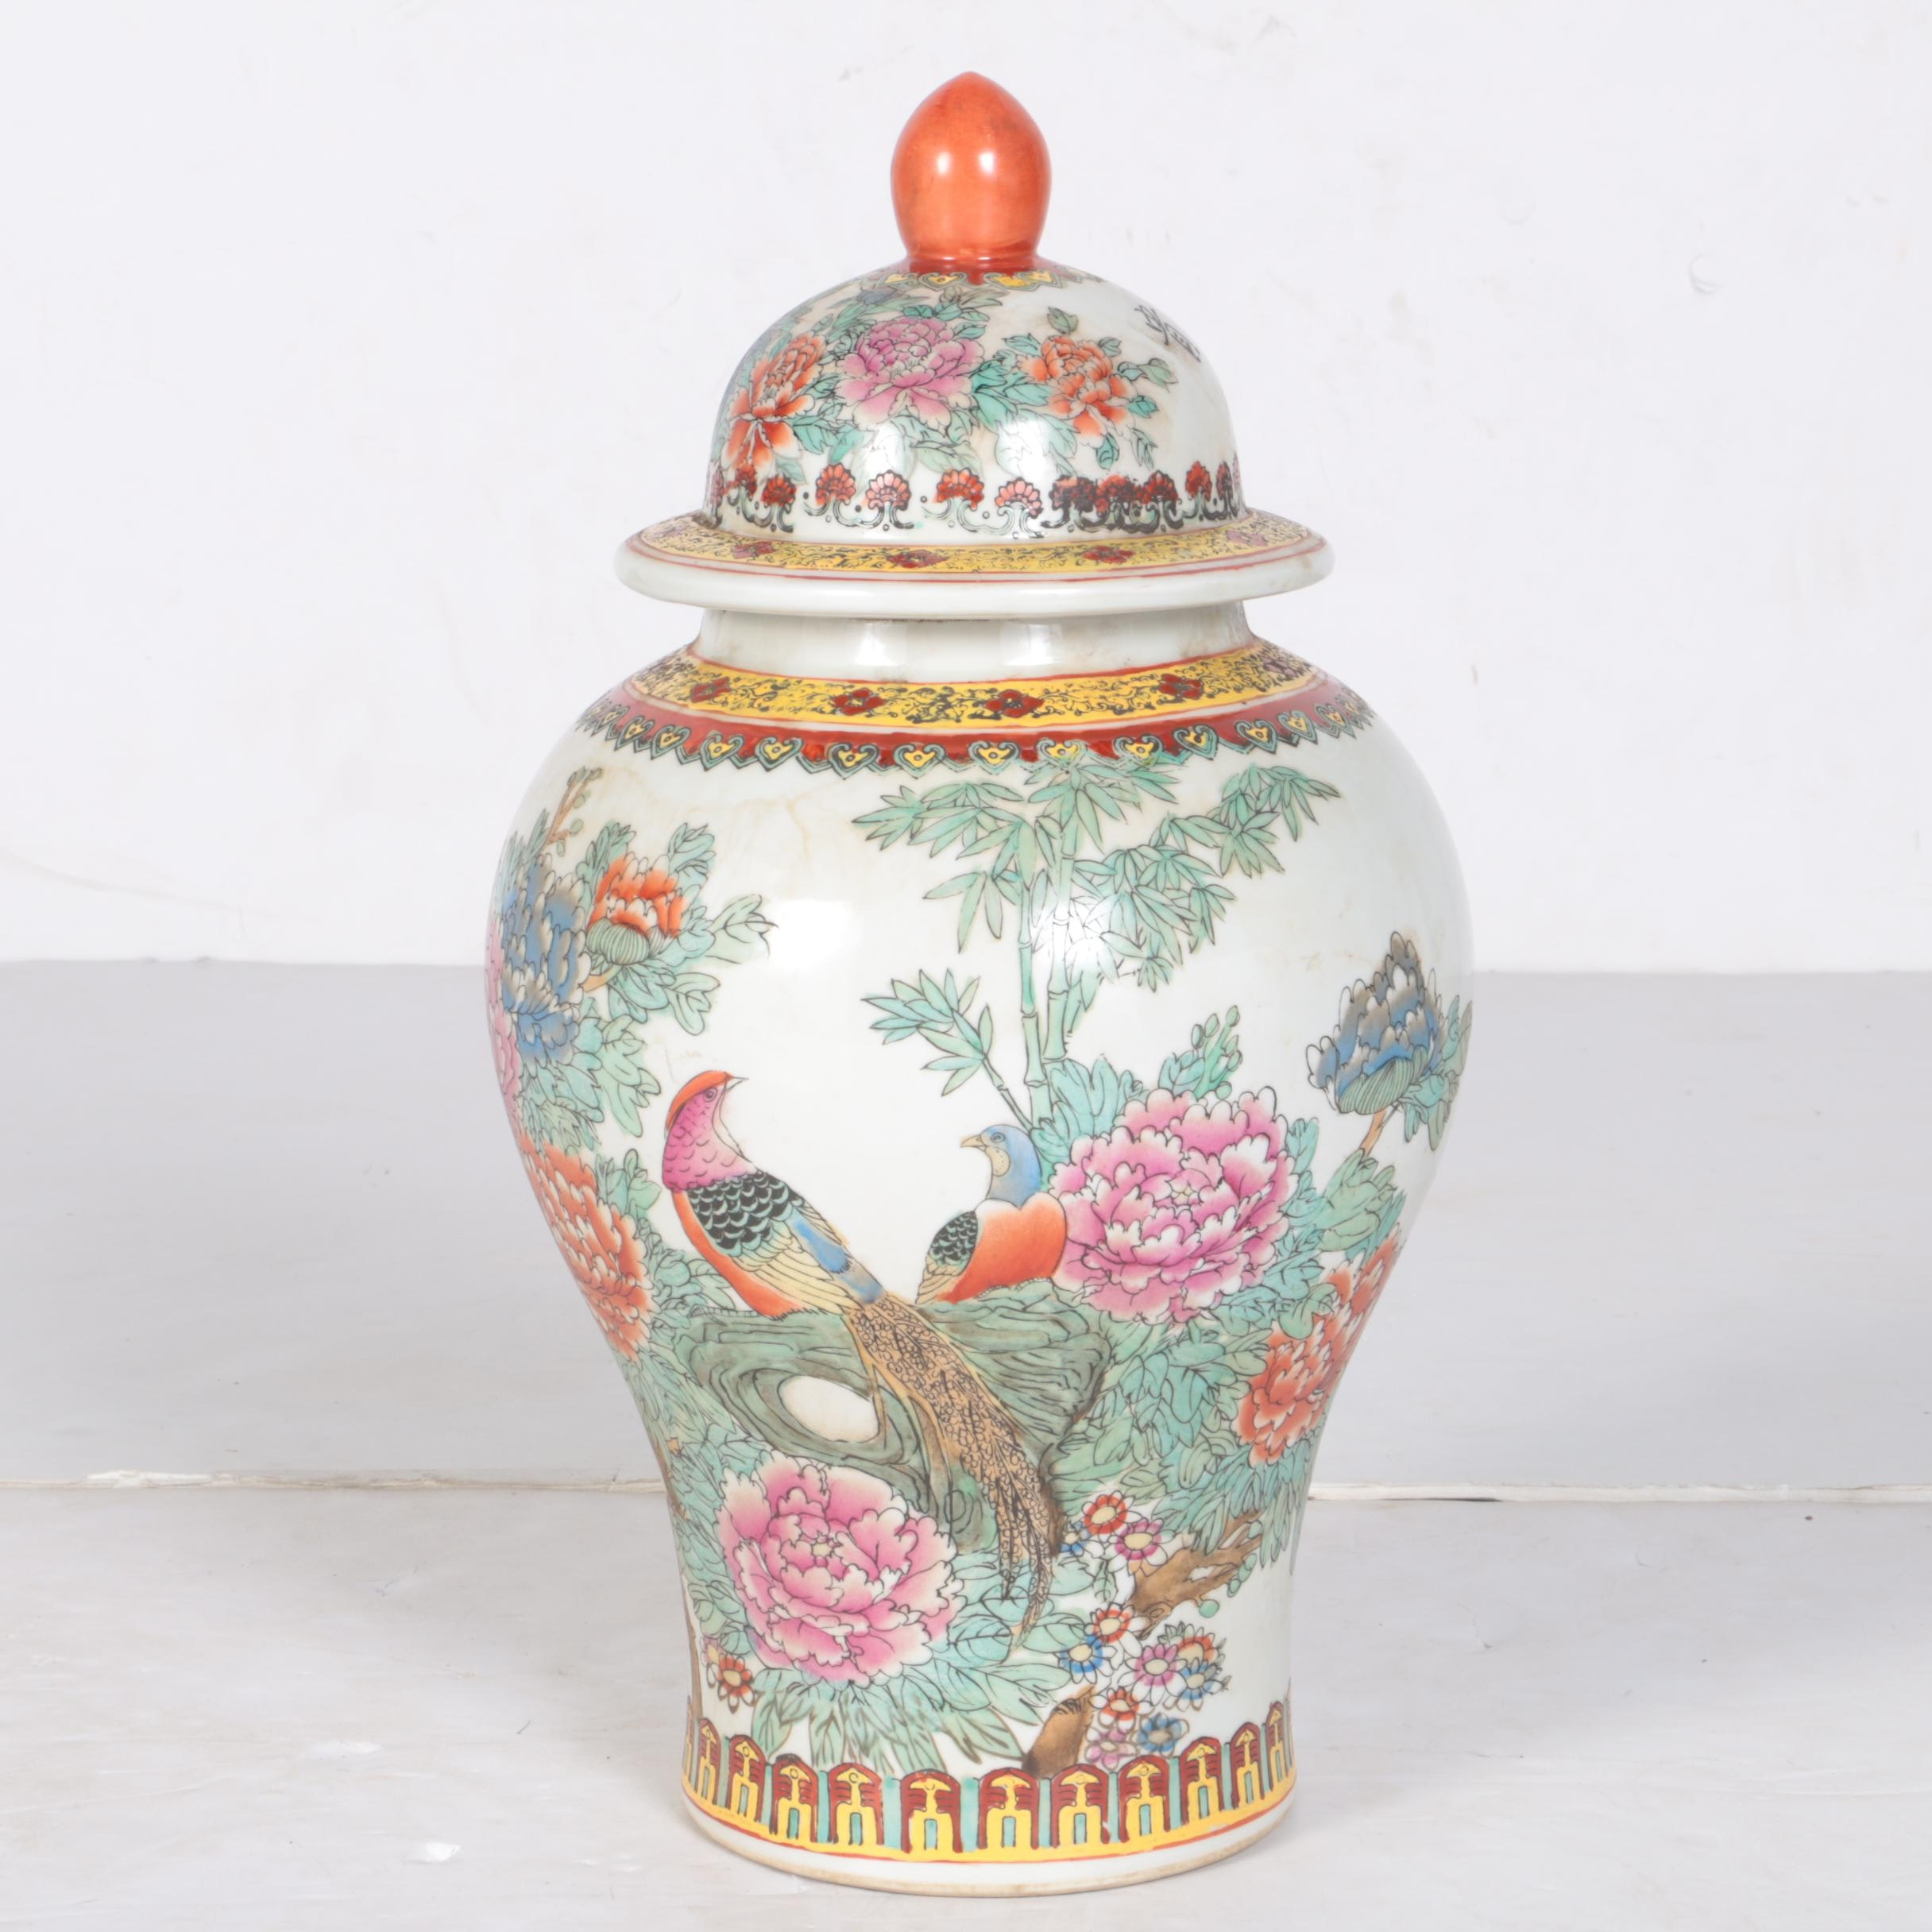 Chinese Ceramic Urn with Pheasant and Peony Designs